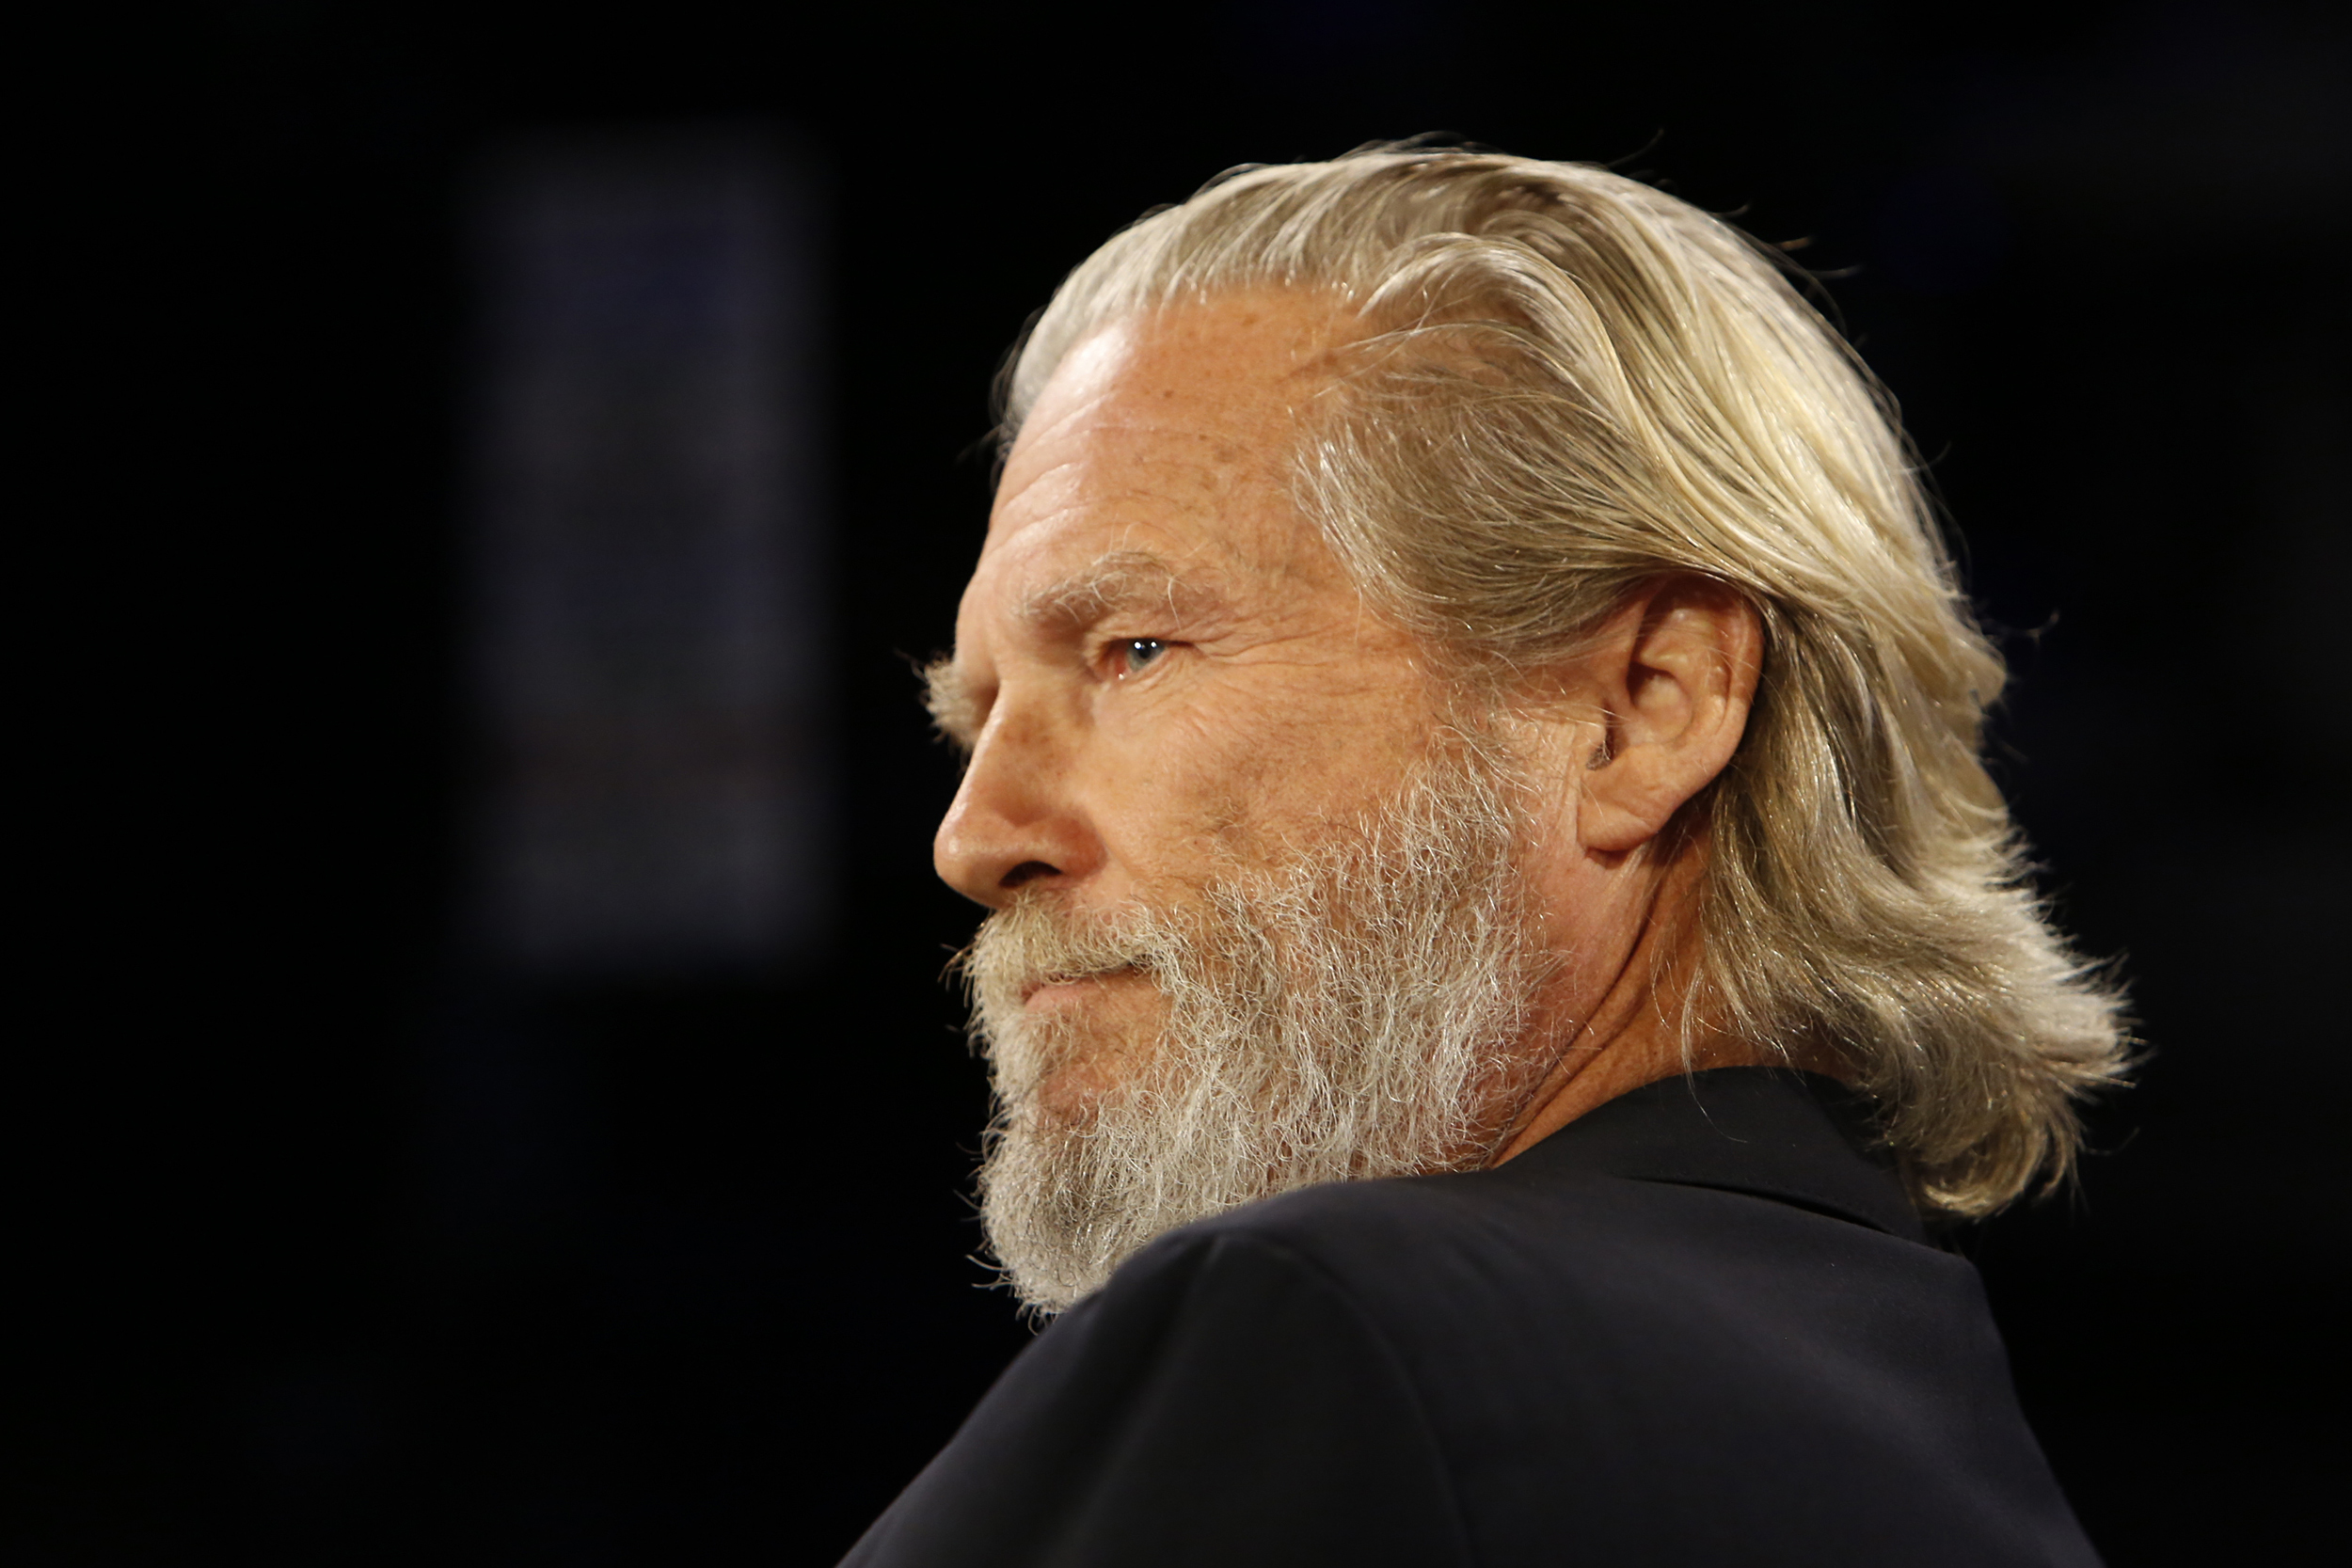 Jeff Bridges says he got Covid while in chemo and it made 'cancer look like a piece of cake'